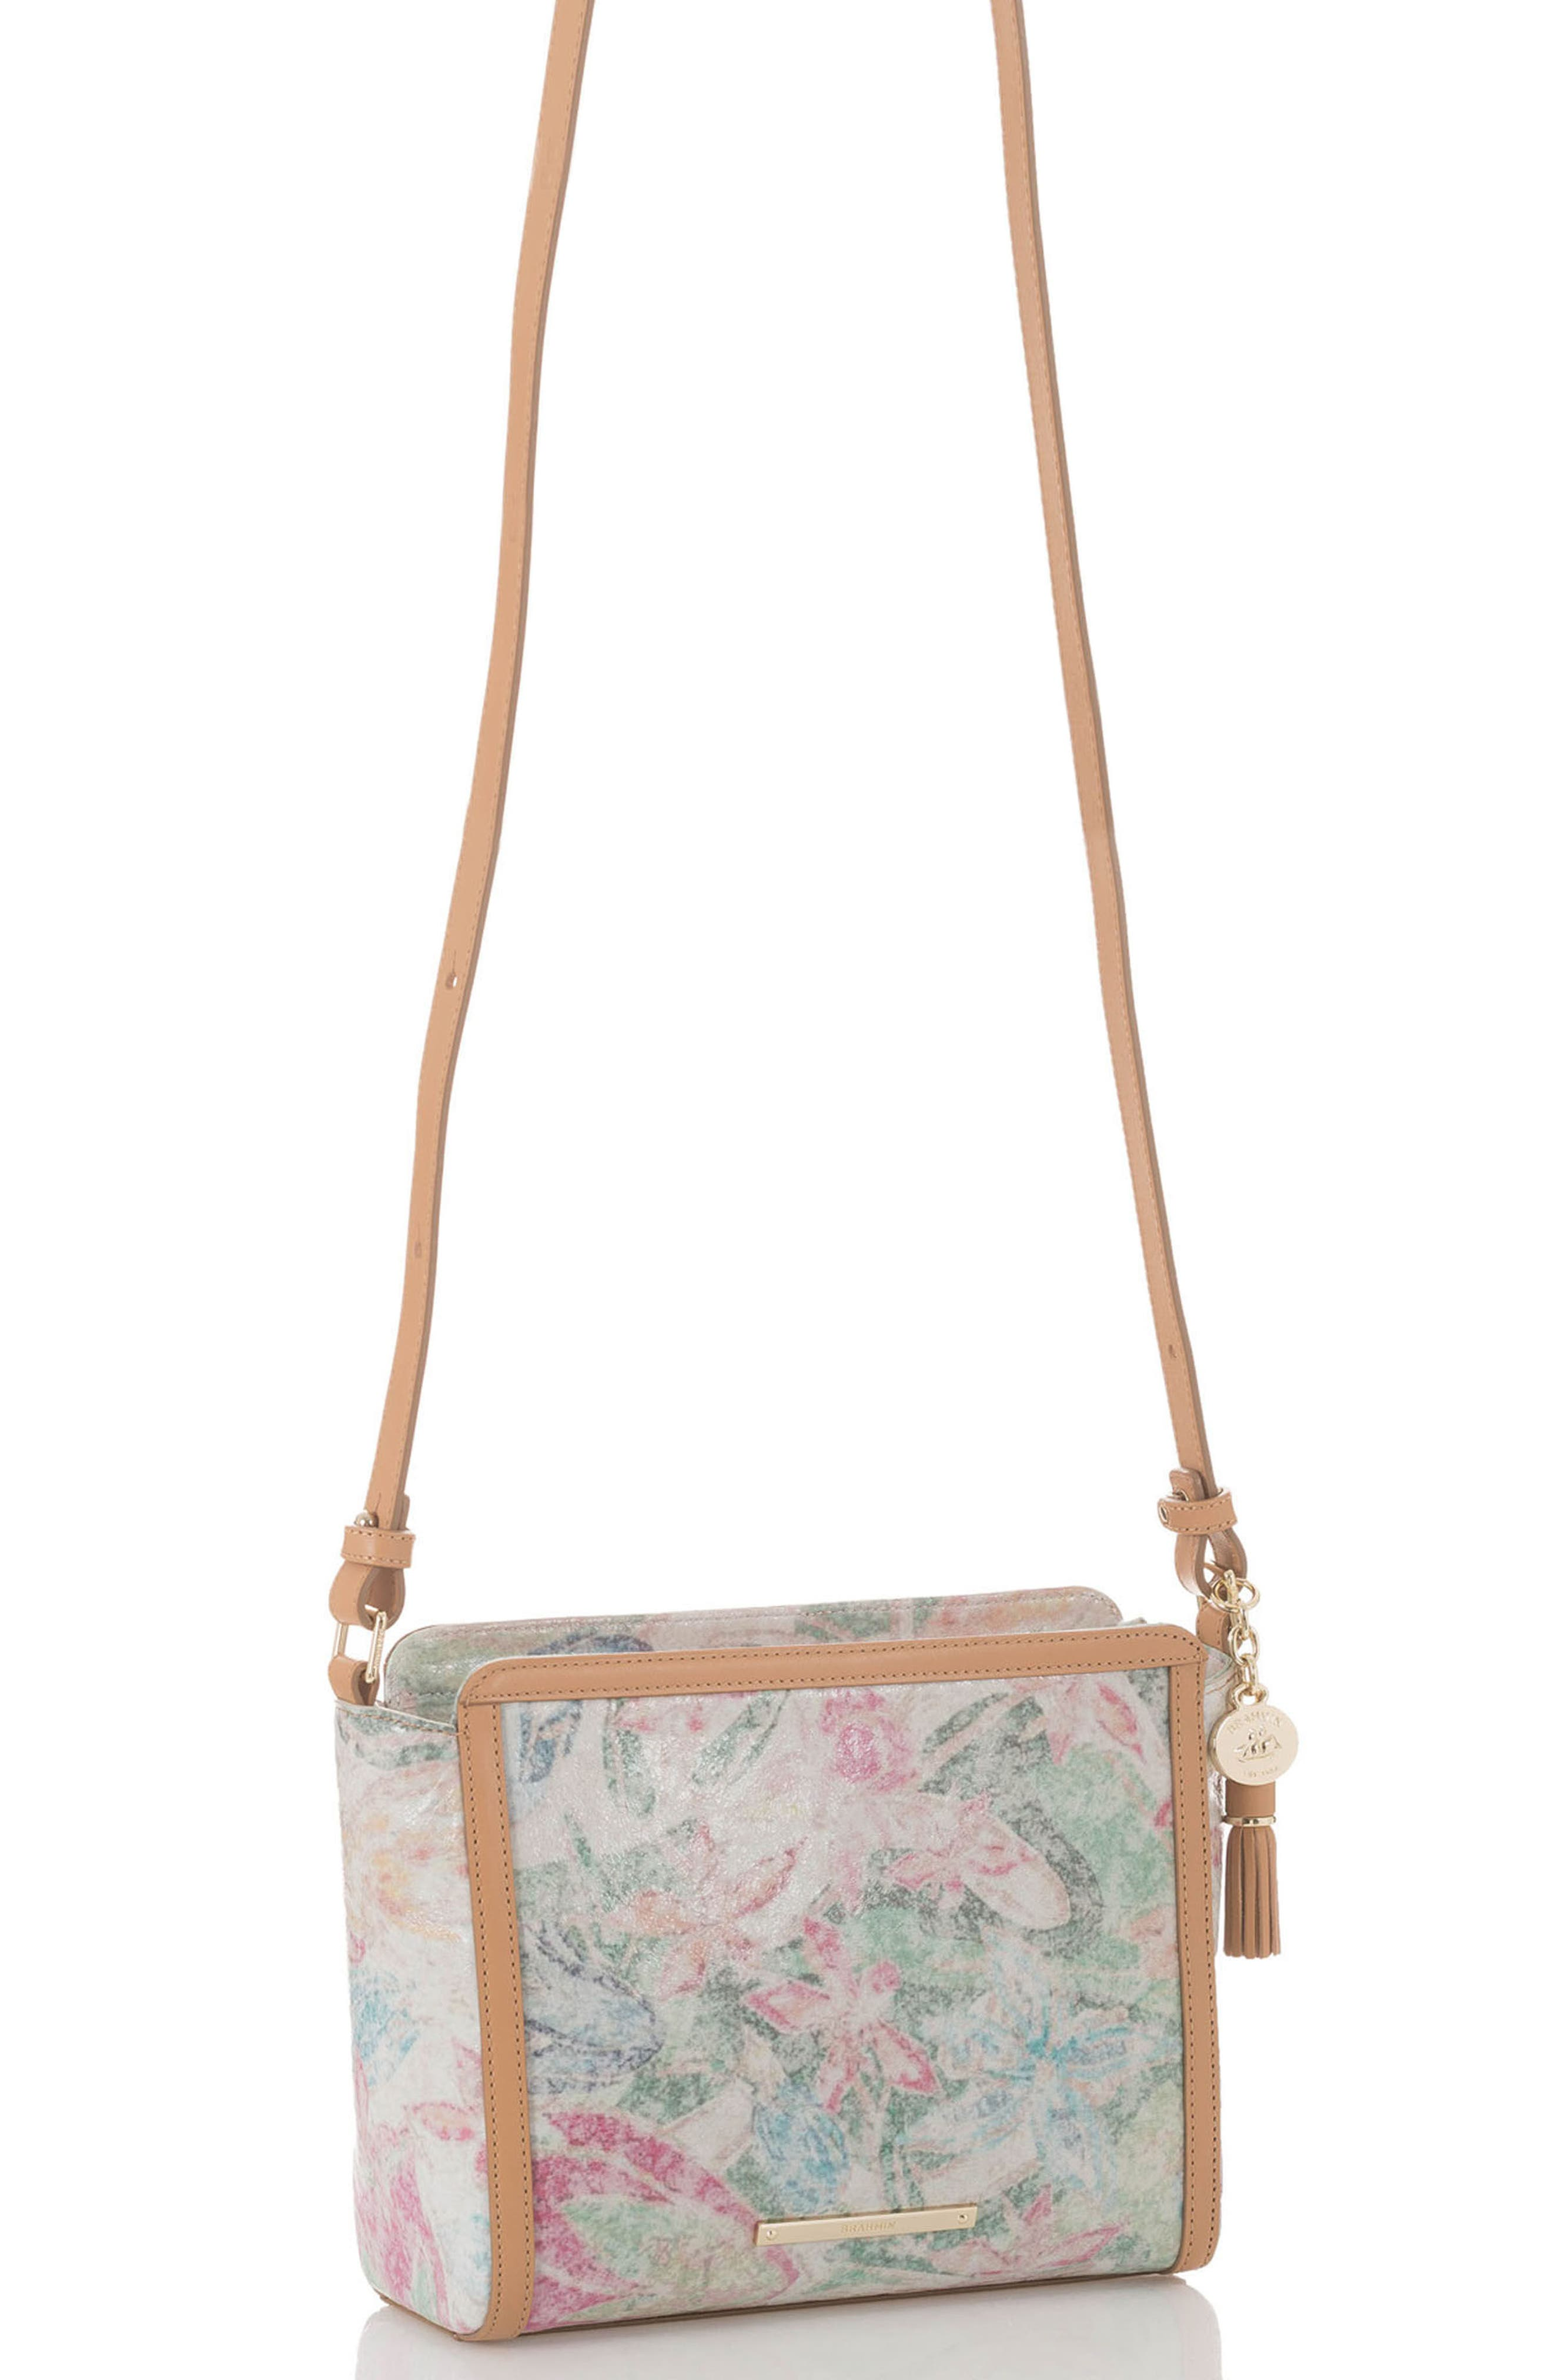 Floral Carrie Leather Crossbody Bag,                             Alternate thumbnail 4, color,                             Creme